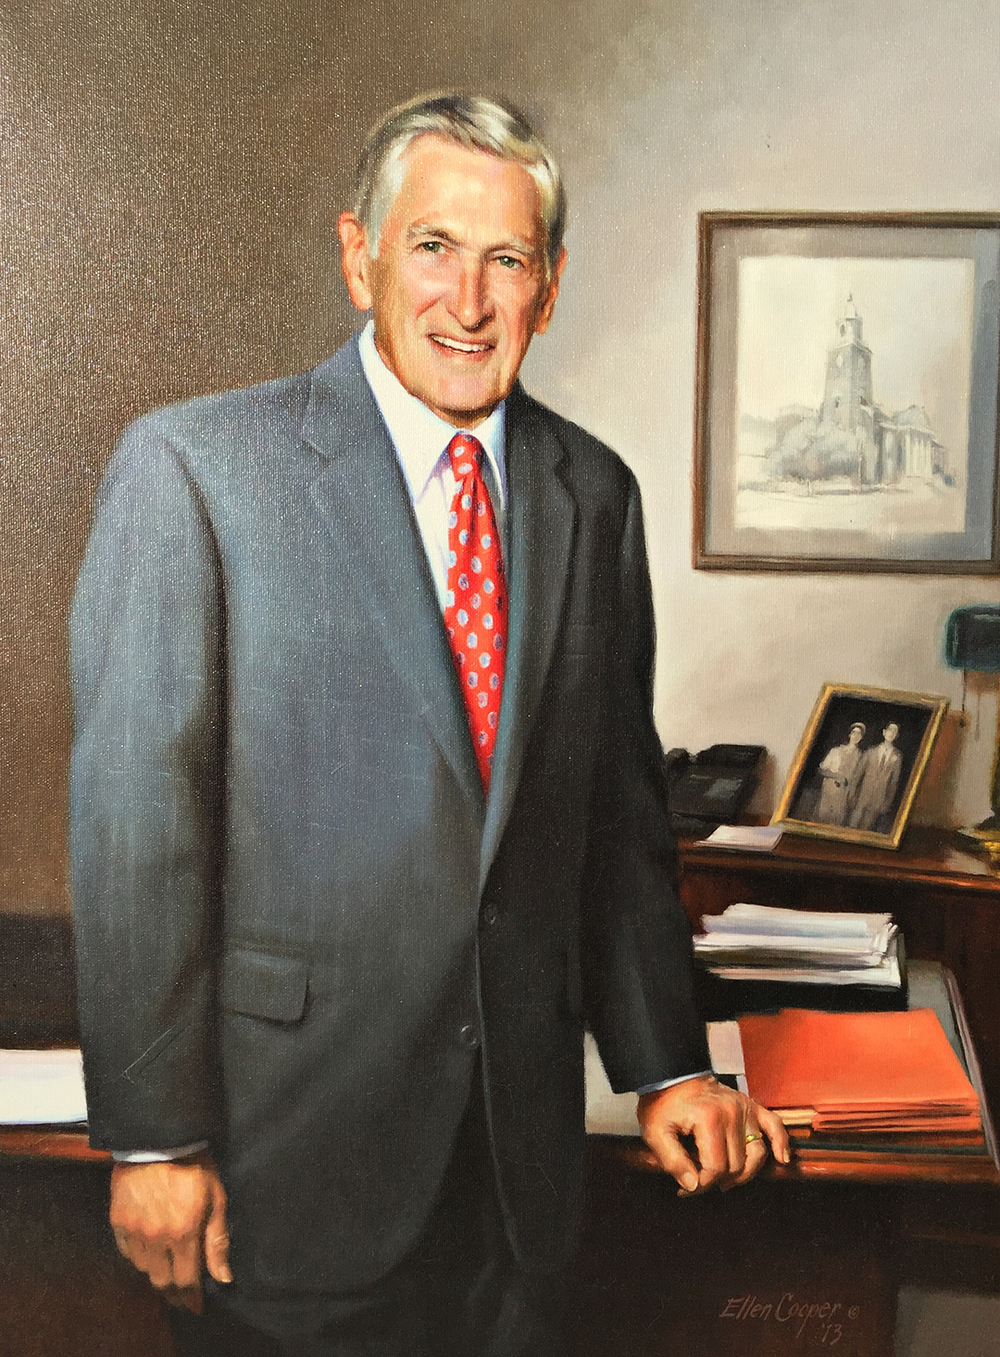 Bruce W. Kirbo portrait hanging at the University of Georgia Law School